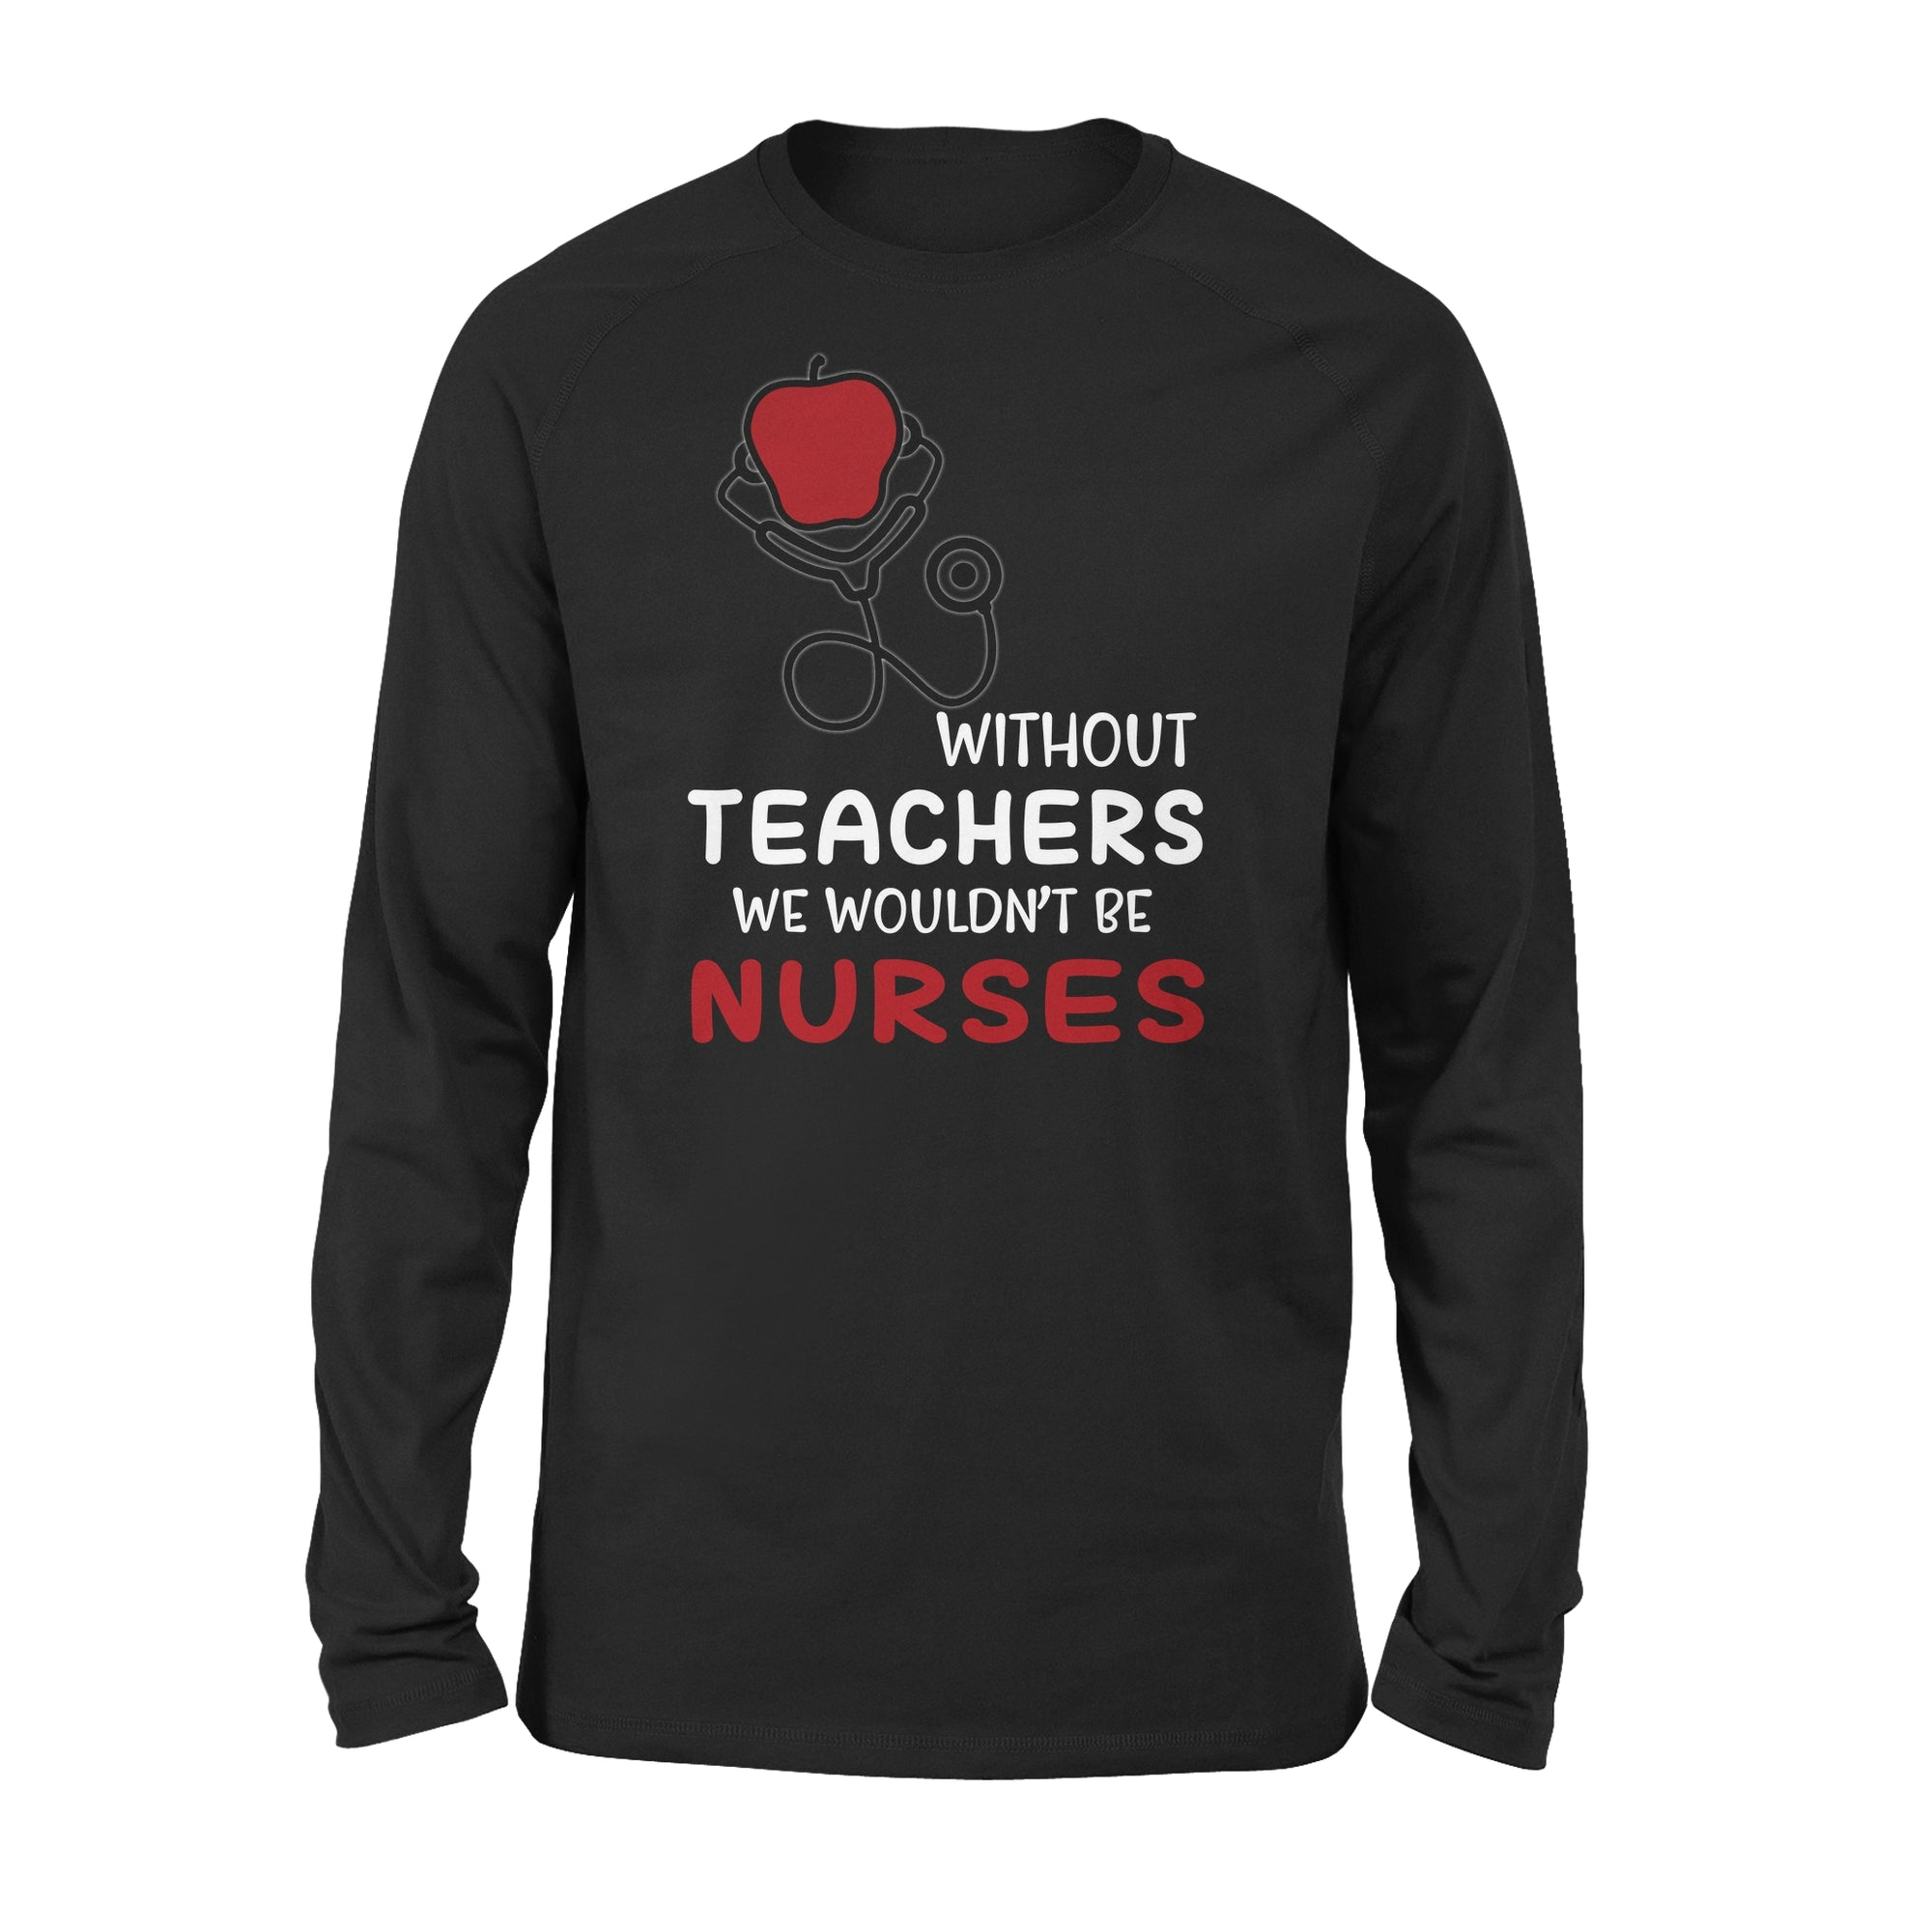 VIRA Premium Long Sleeve for awesome techers & nurses